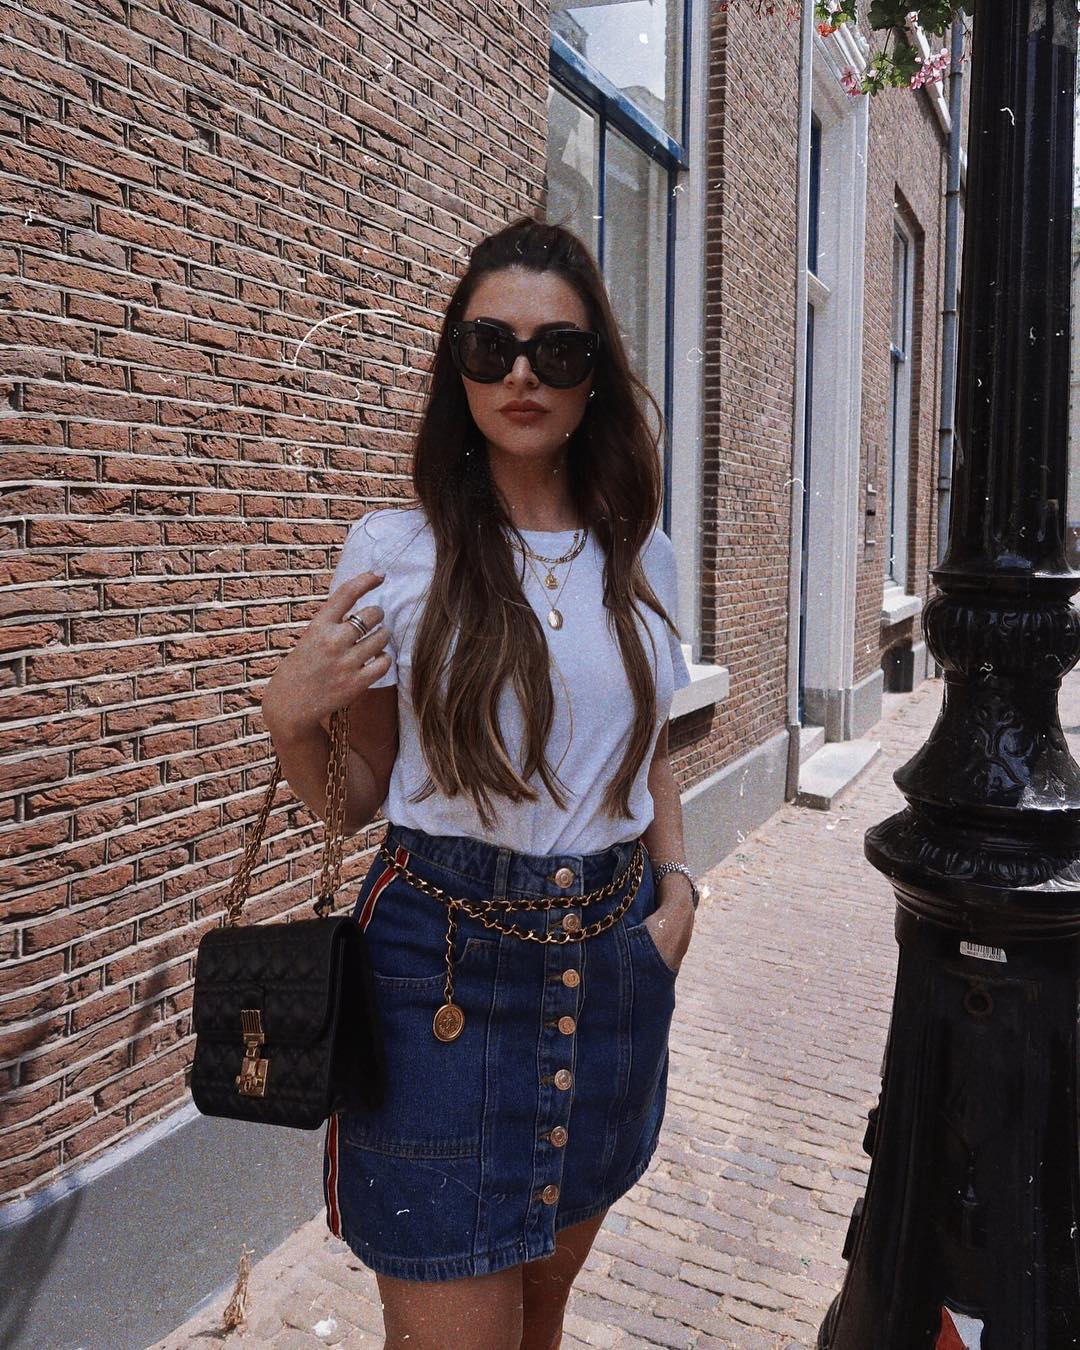 White t-shirt and denim skirt: simple summer day look 2021